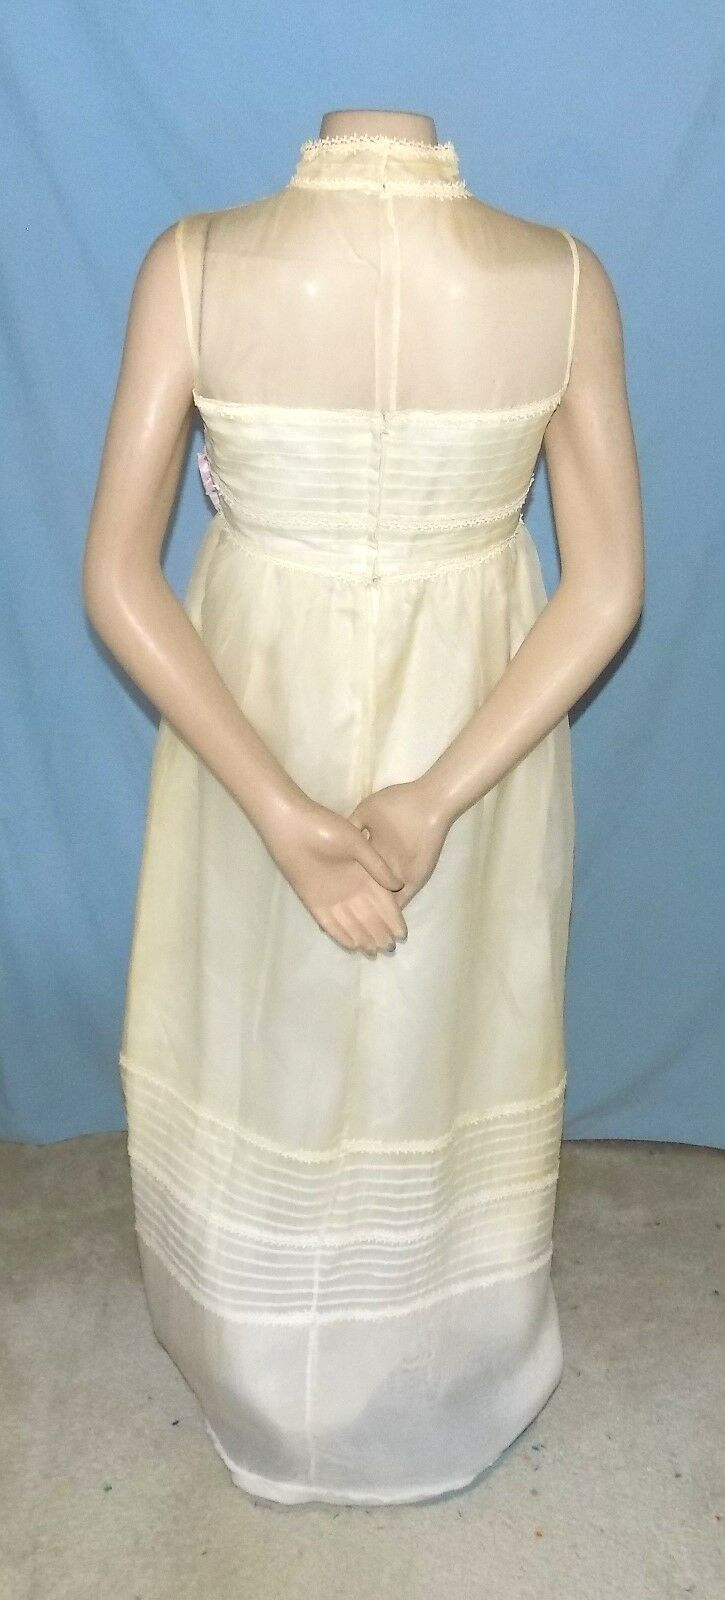 3afff4052d1 ... Awesome Vintage Floor Length Wedding Special Special Special Occasion Dress  Size Small (Est 78e7b6 ...